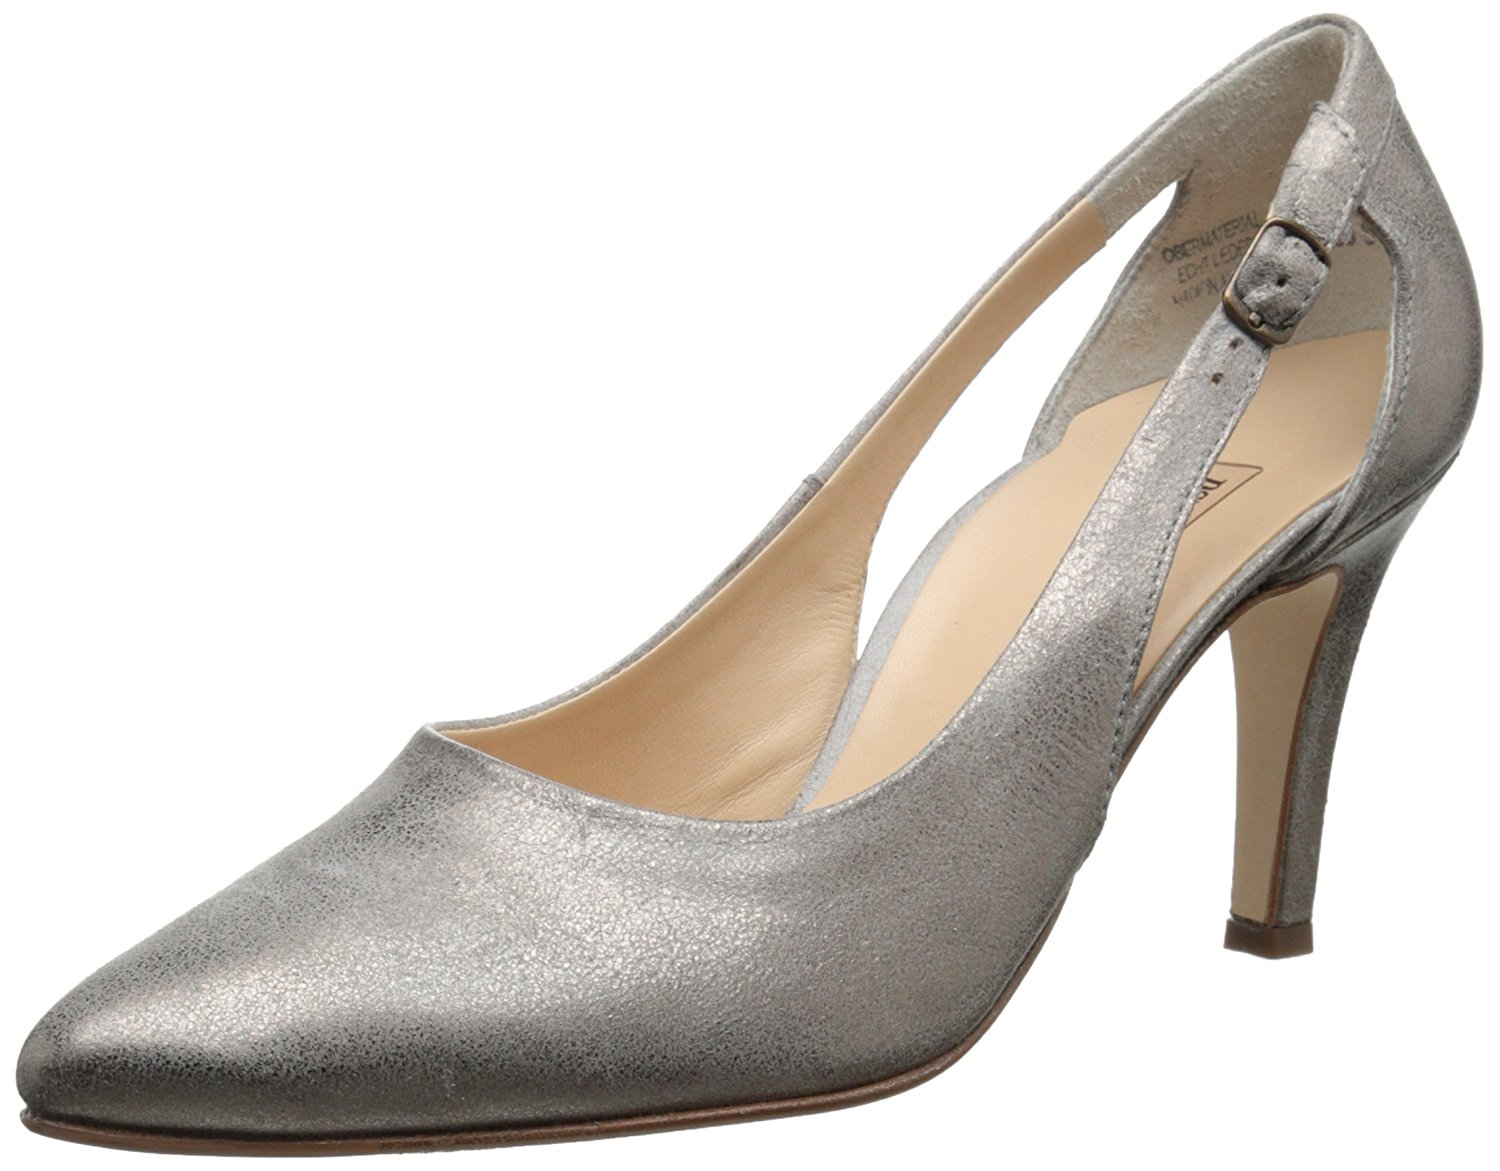 Paul Green Womens Contessa Pointed Toe Ankle Strap Classic Pumps Grey Size 4.5